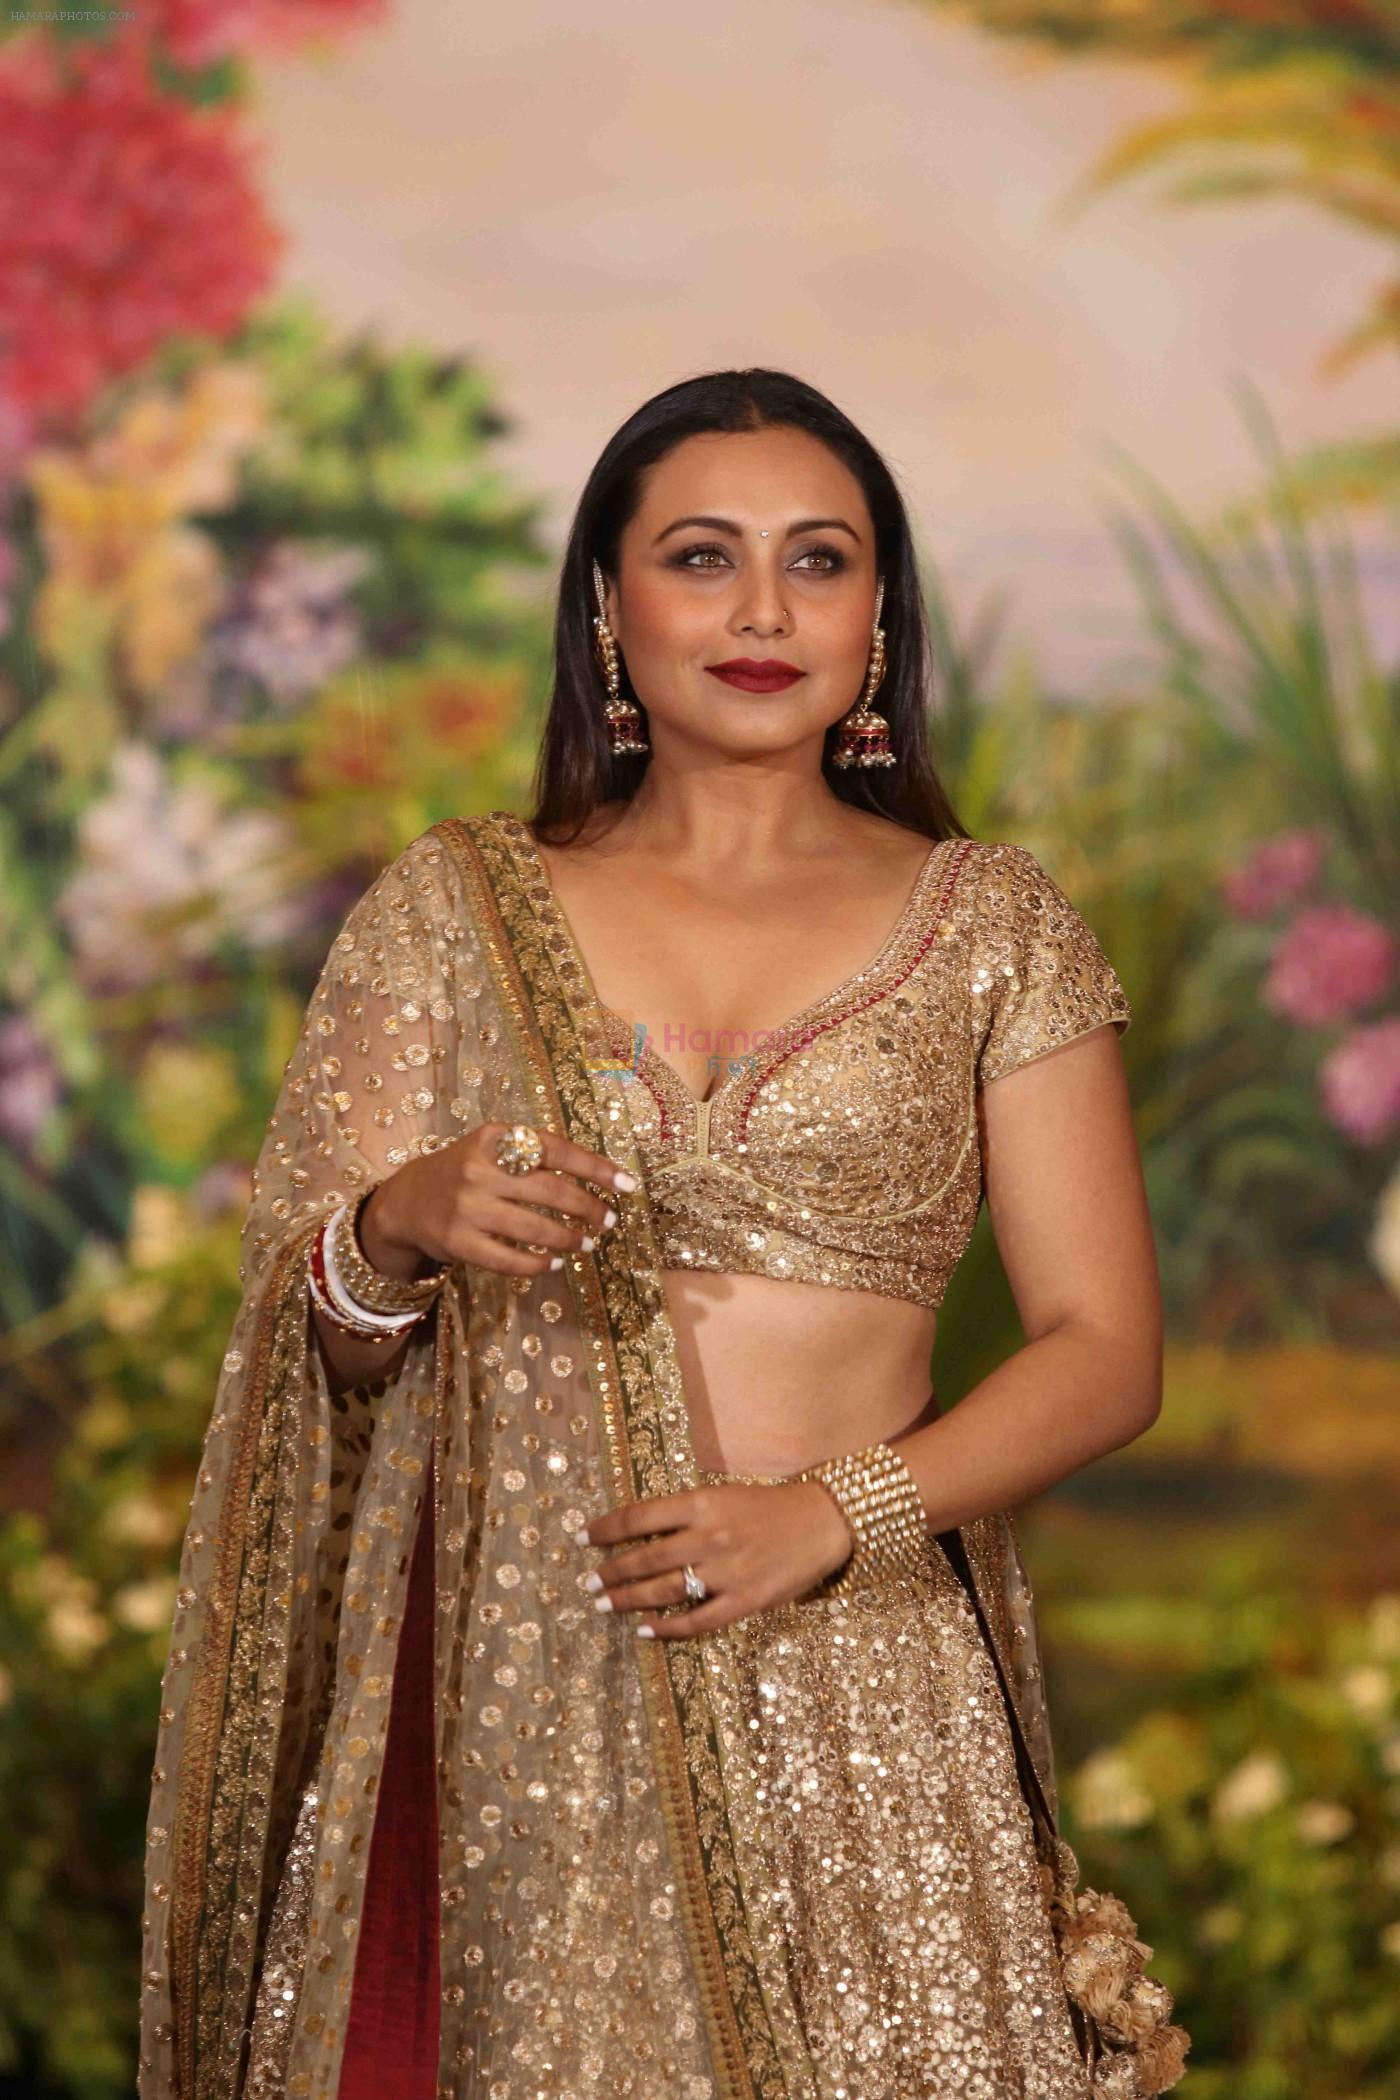 Rani Mukerji at Sonam Kapoor and Anand Ahuja's Wedding Reception on 8th May 2018